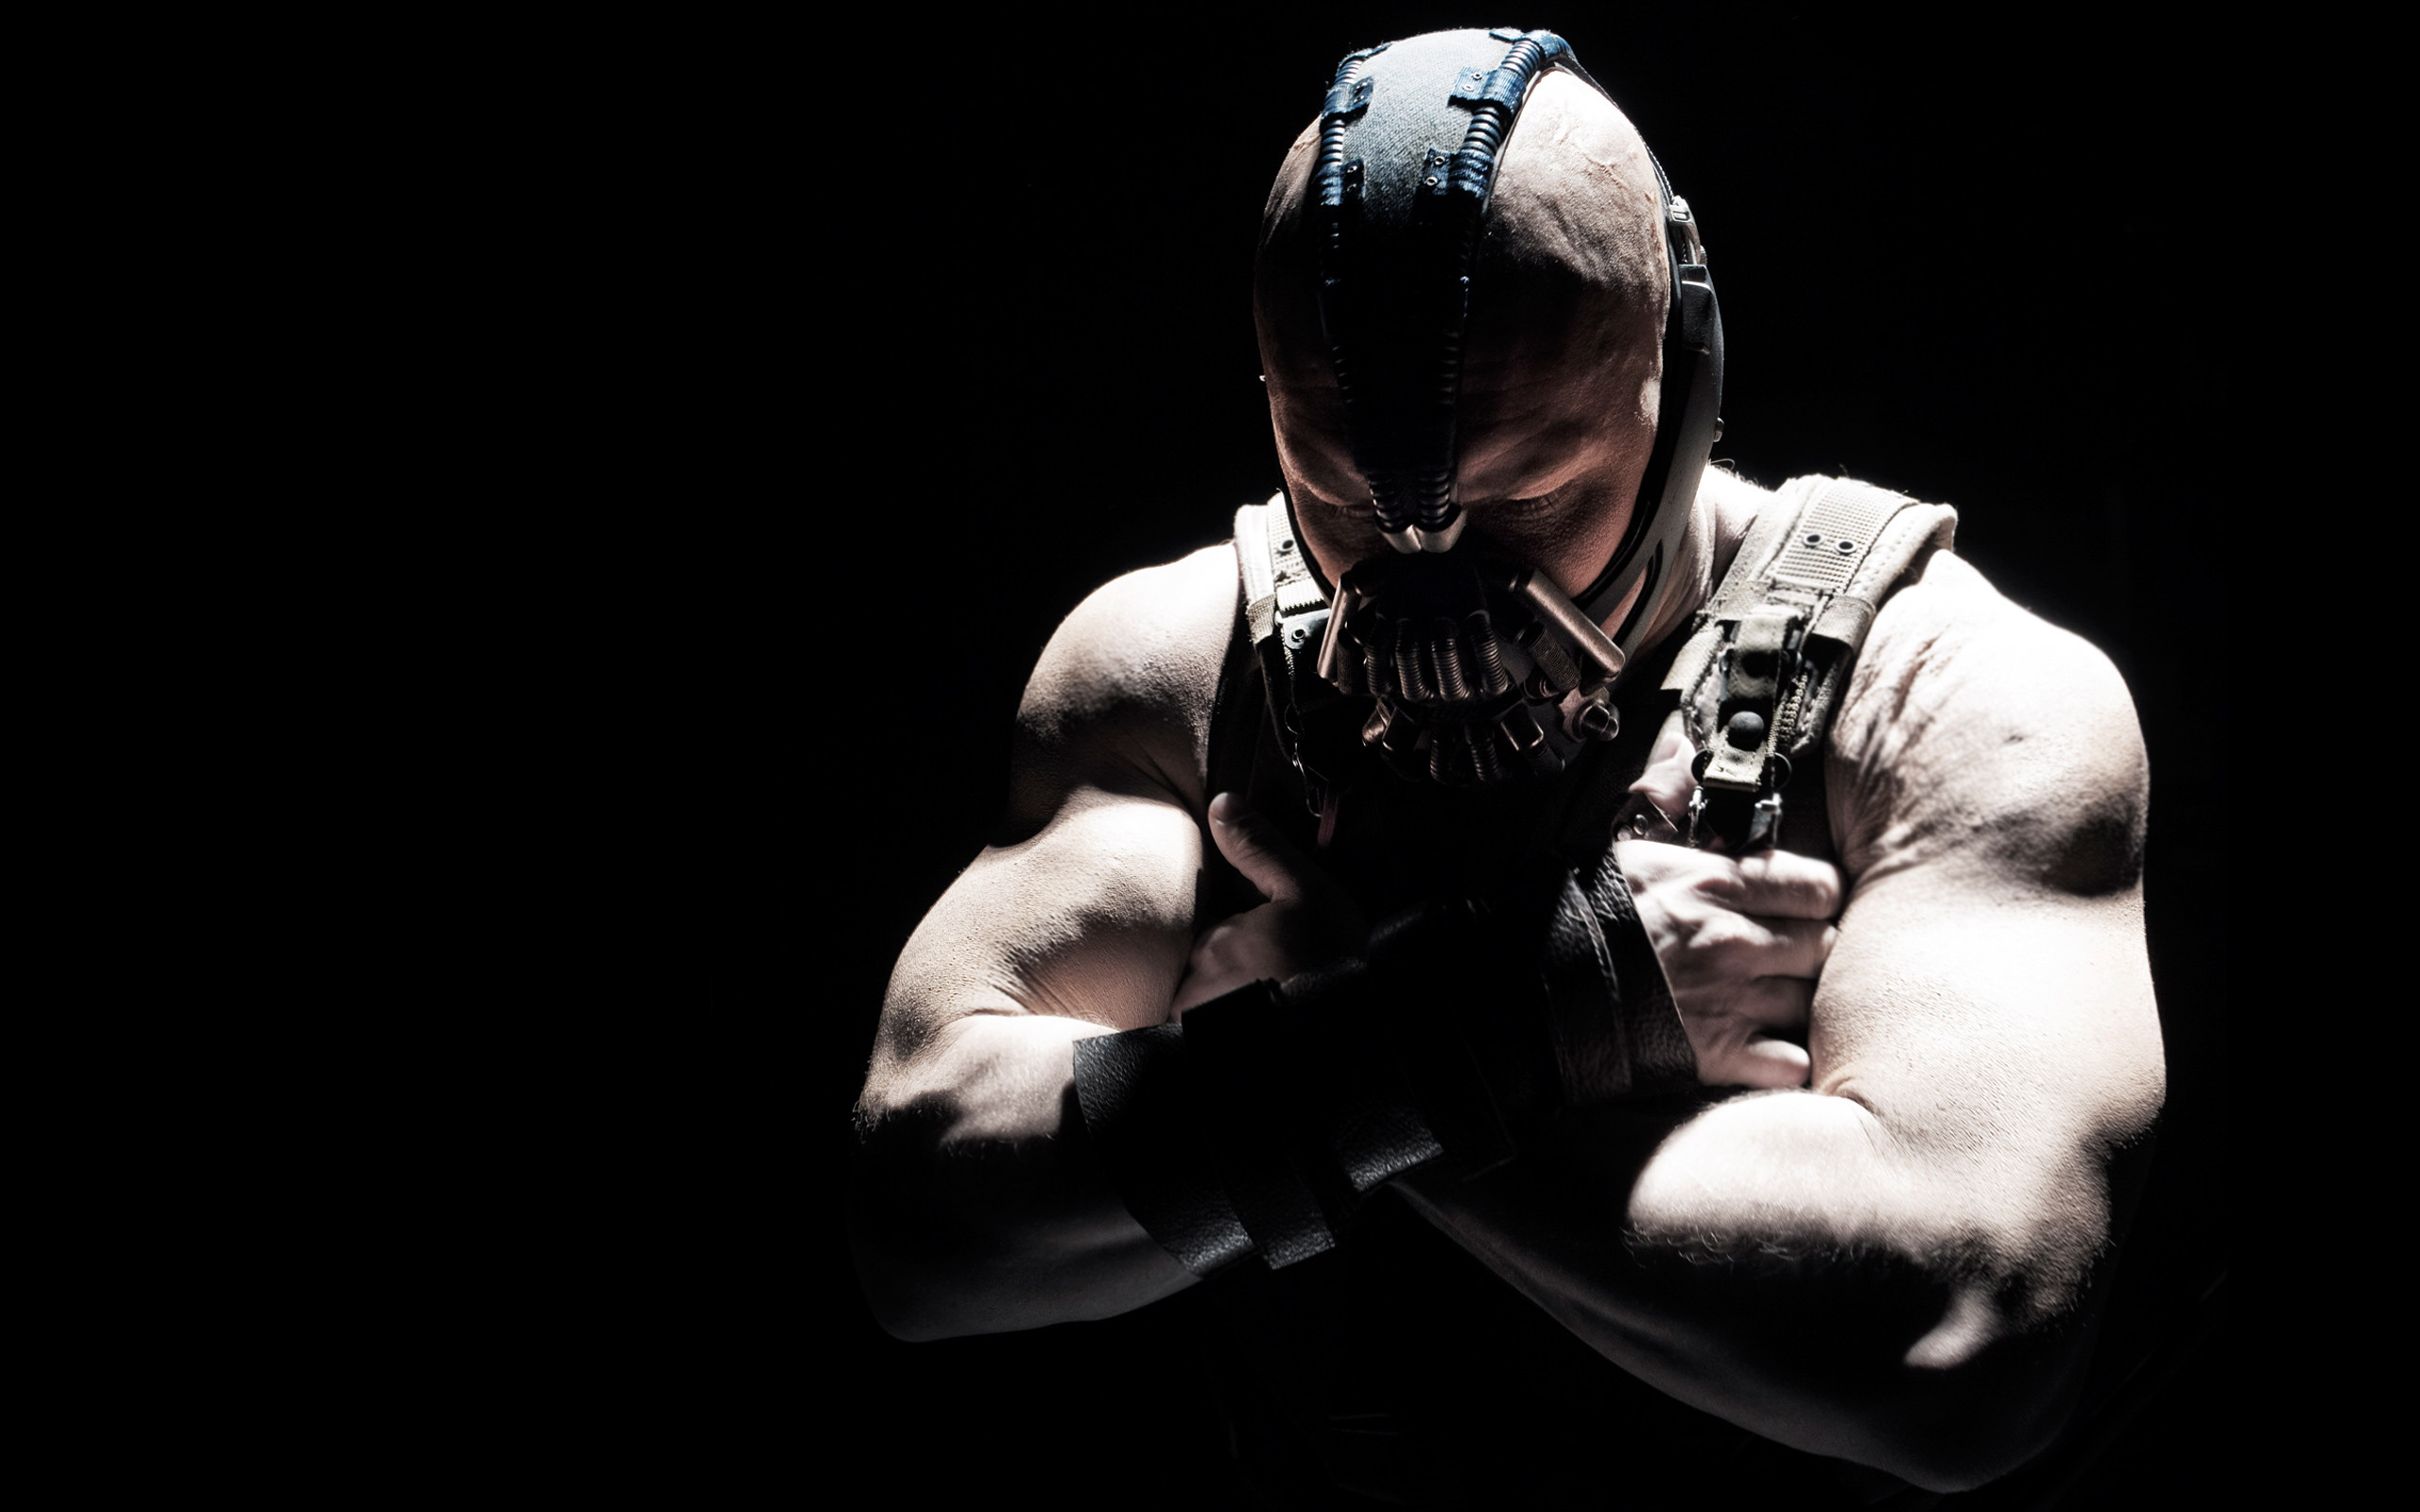 2560x1600 Bane images Tom Hardy as Bane in 'The Dark Knight Rises' (HQ) HD wallpaper  and background photos